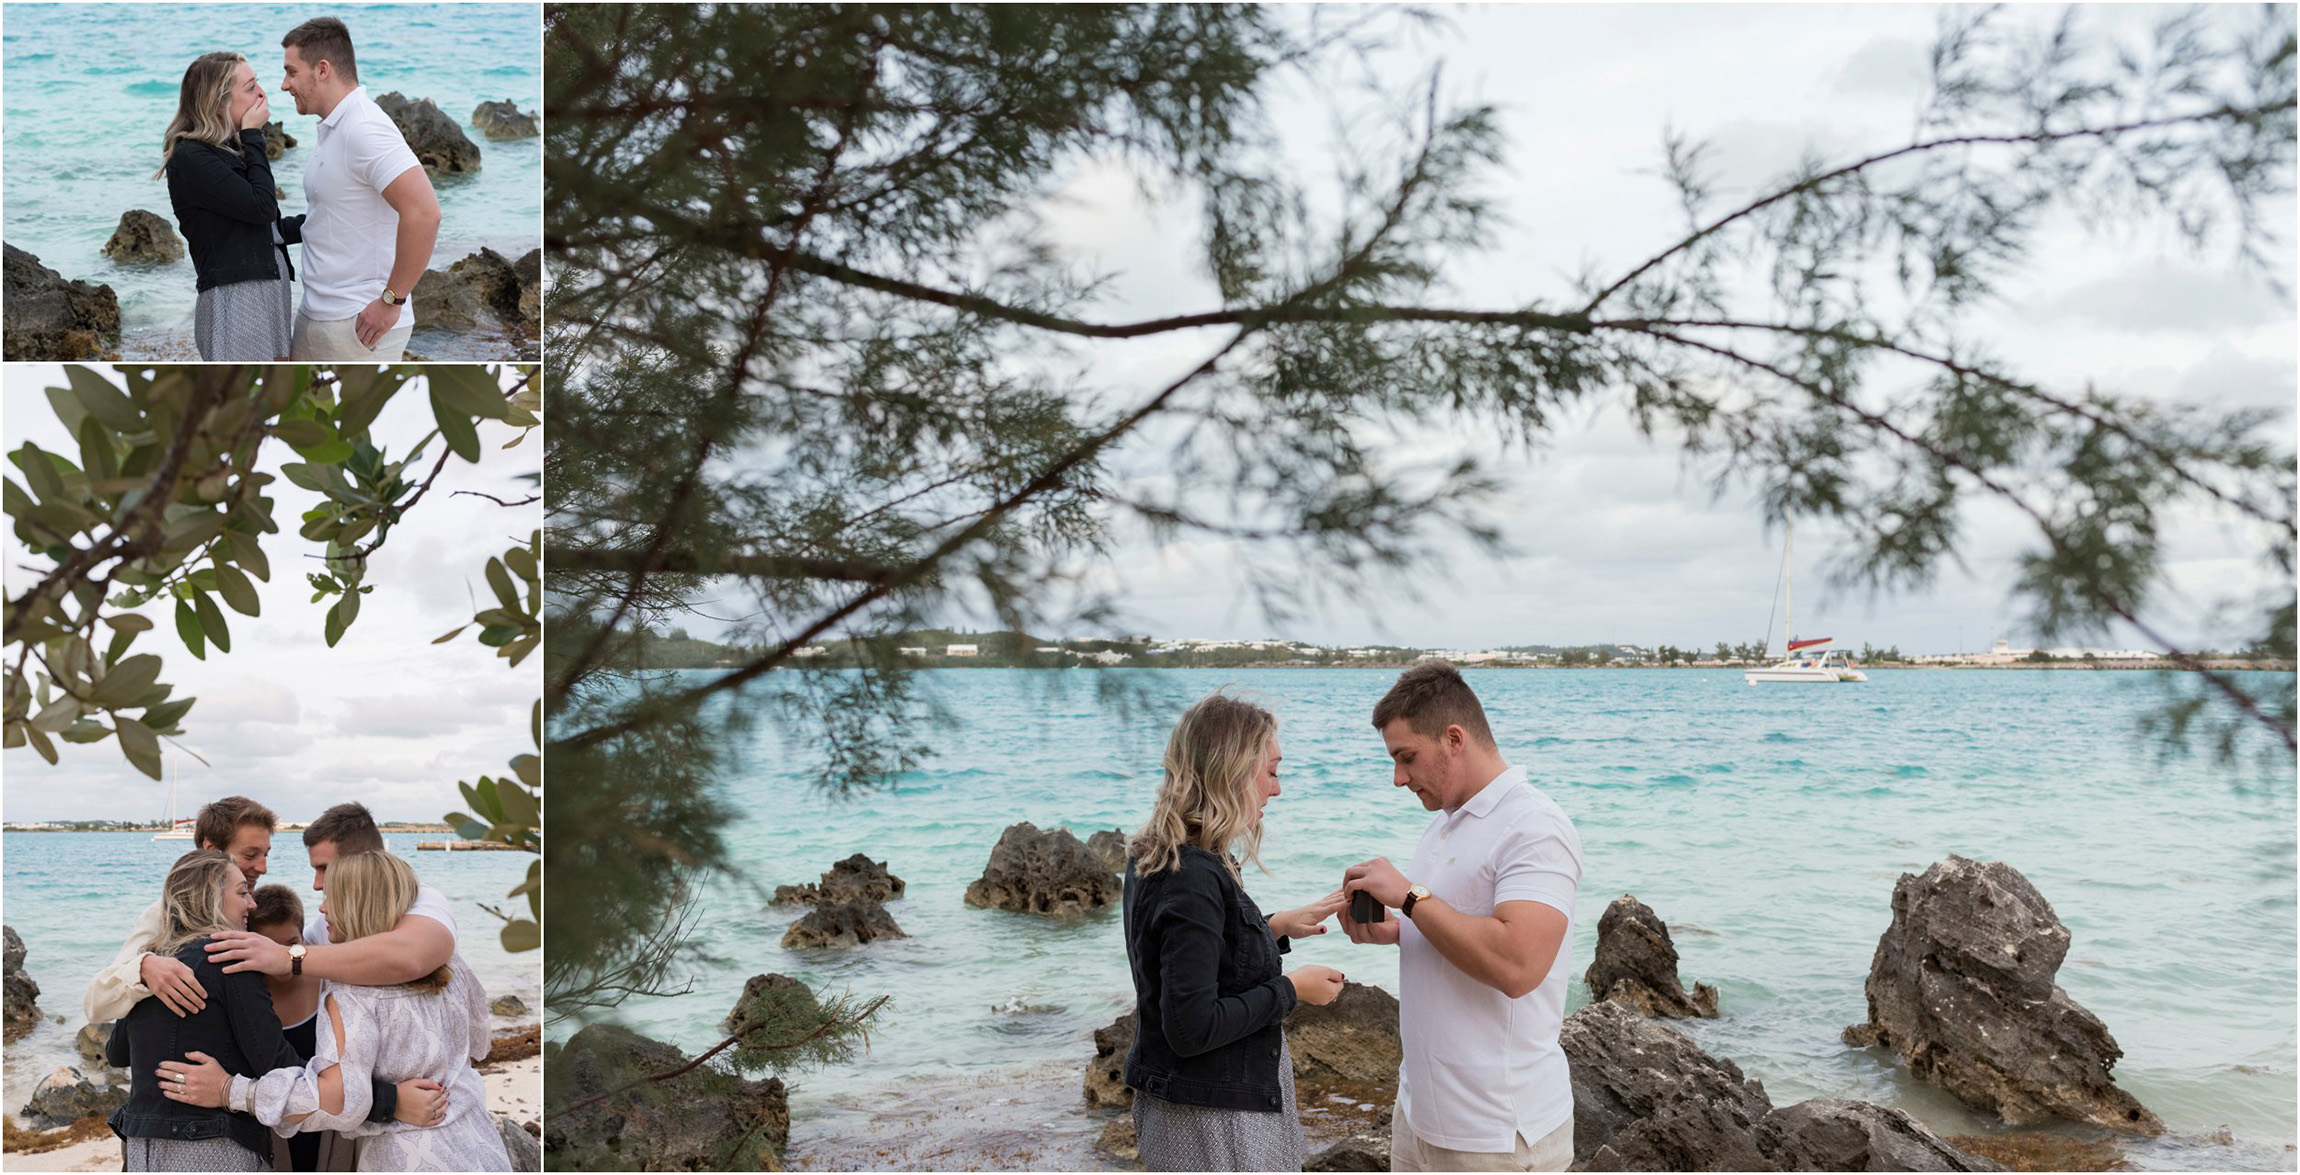 ©FianderFoto_Bermuda Proposal Photographer_004.jpg